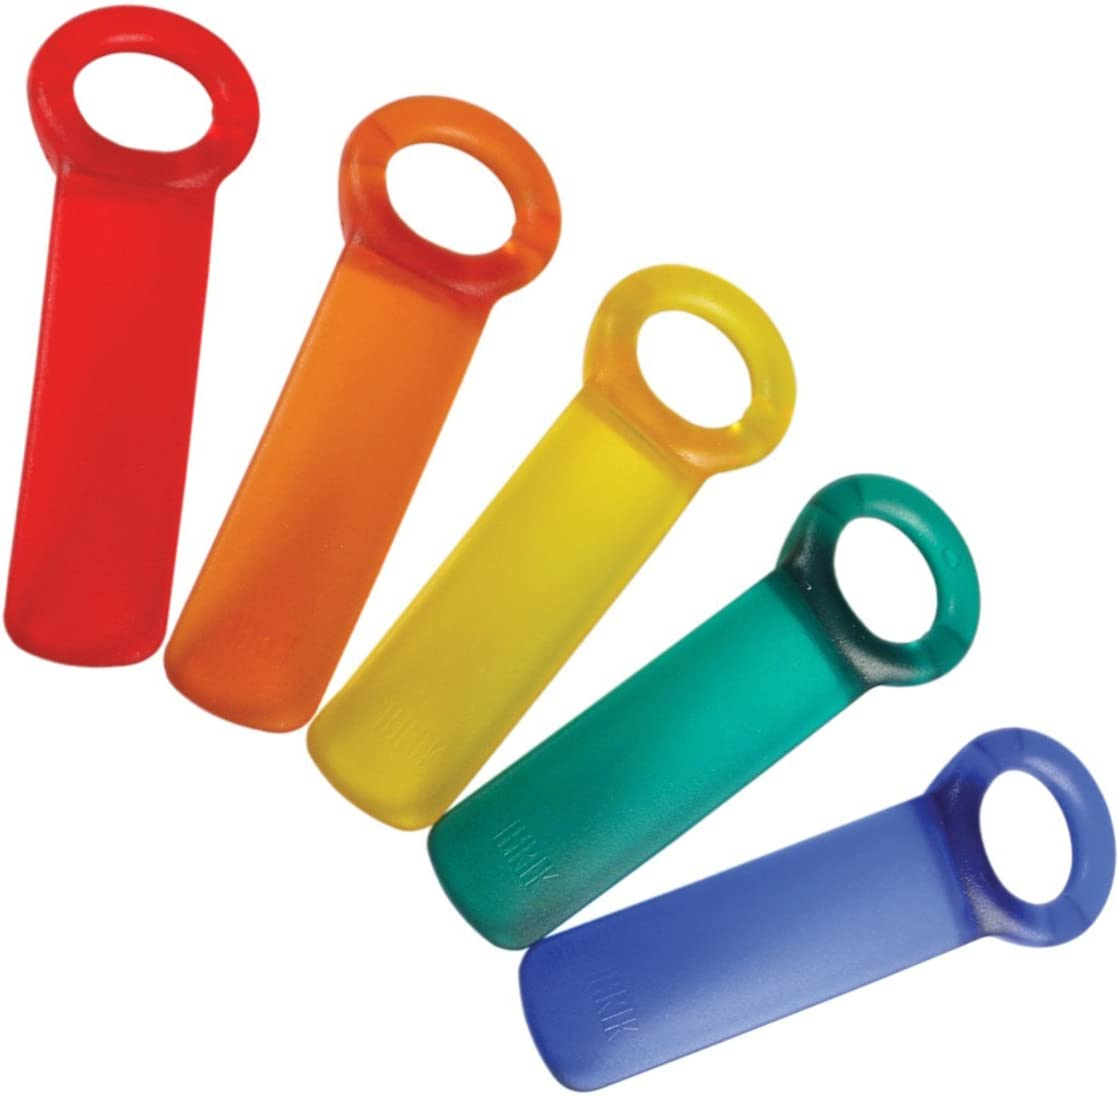 Brix Original Easy Jar Key Opener Great for Kids and Arthritis and Carpal Tunnel Sufferers Frosted Green